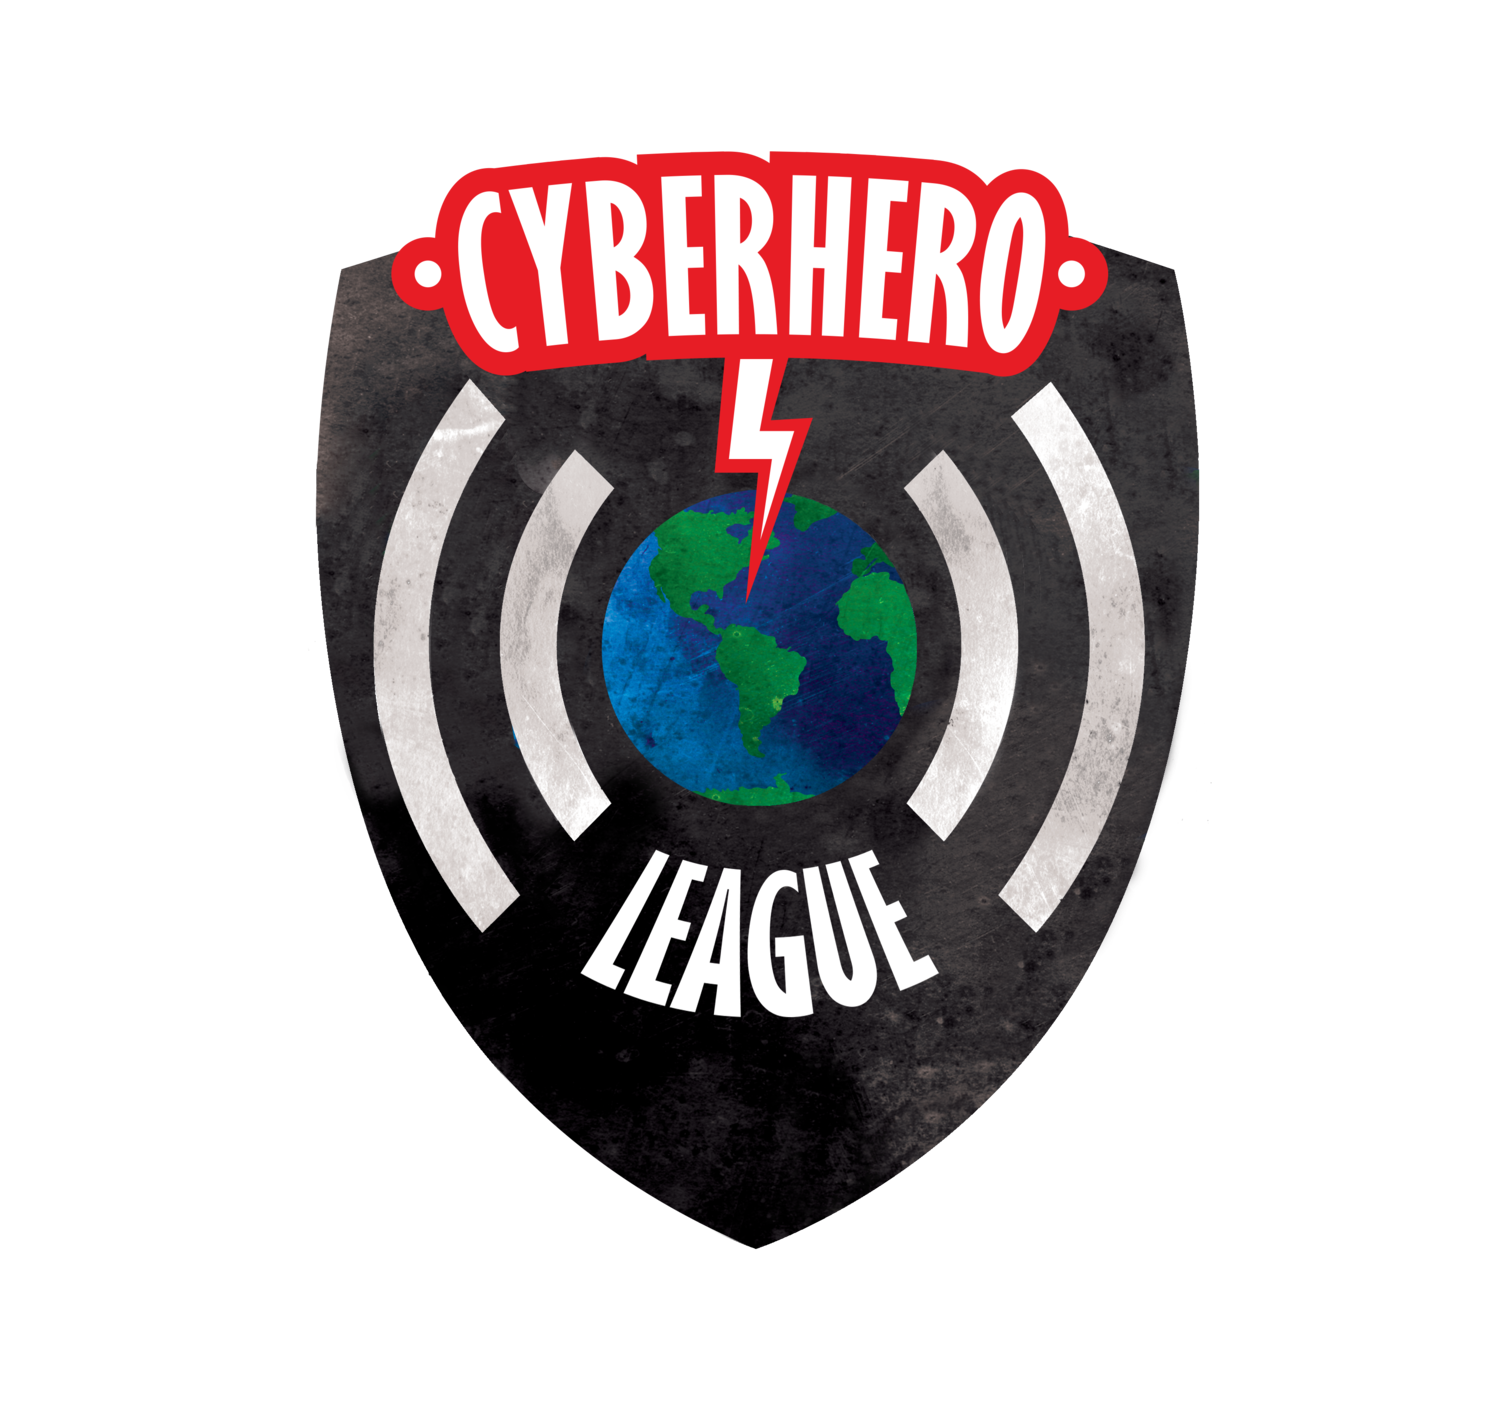 CYBERHERO LEAGUE